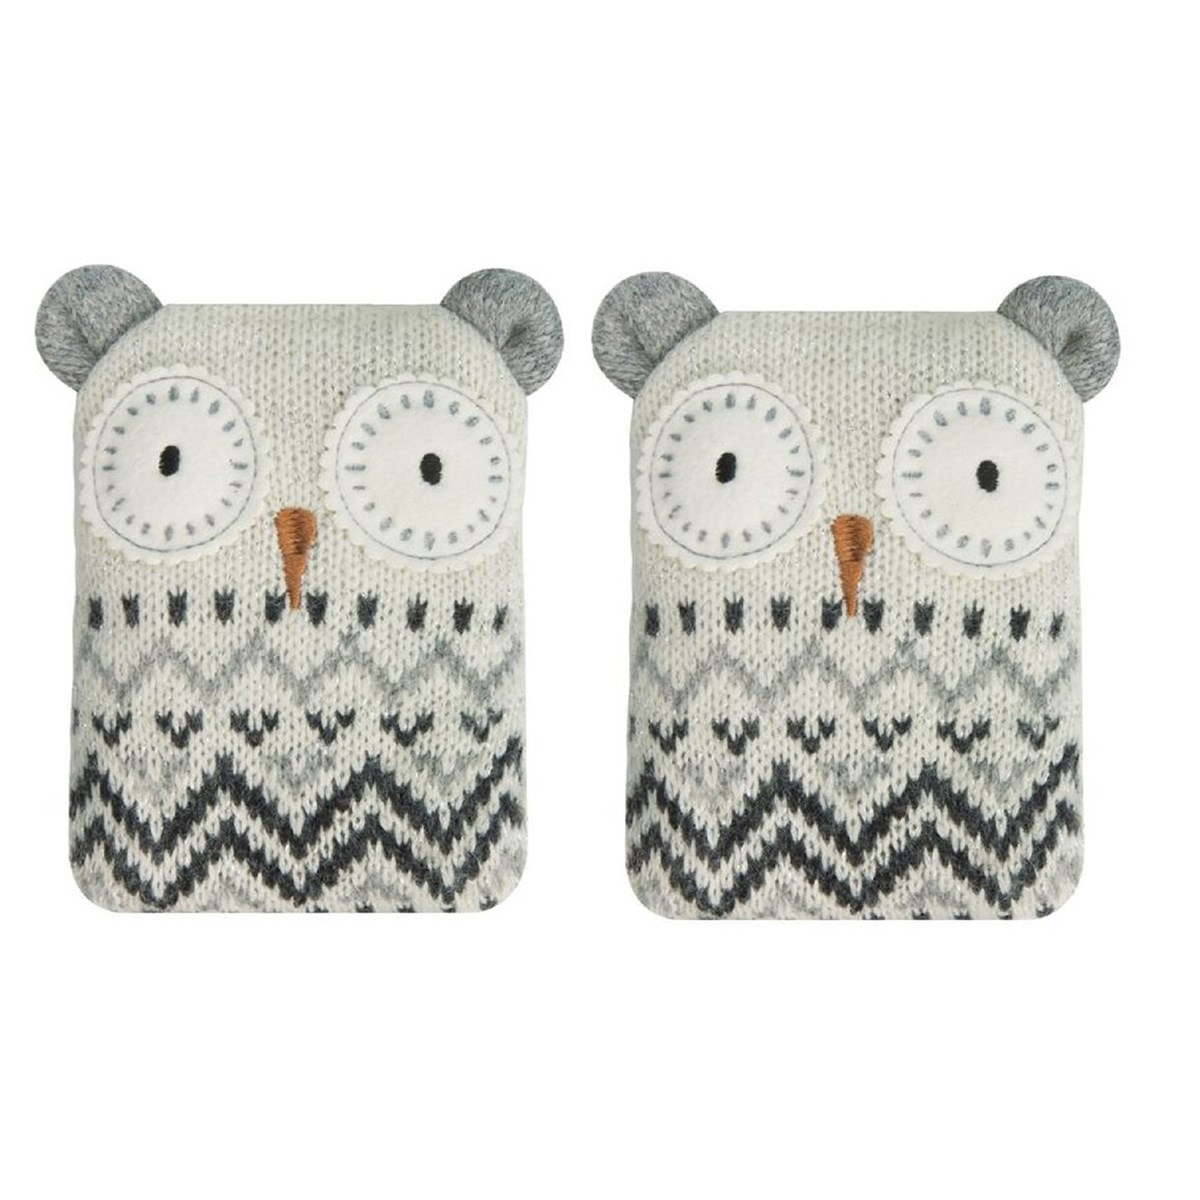 Aroma Home Comforting Hand Warmers - Snow Owl